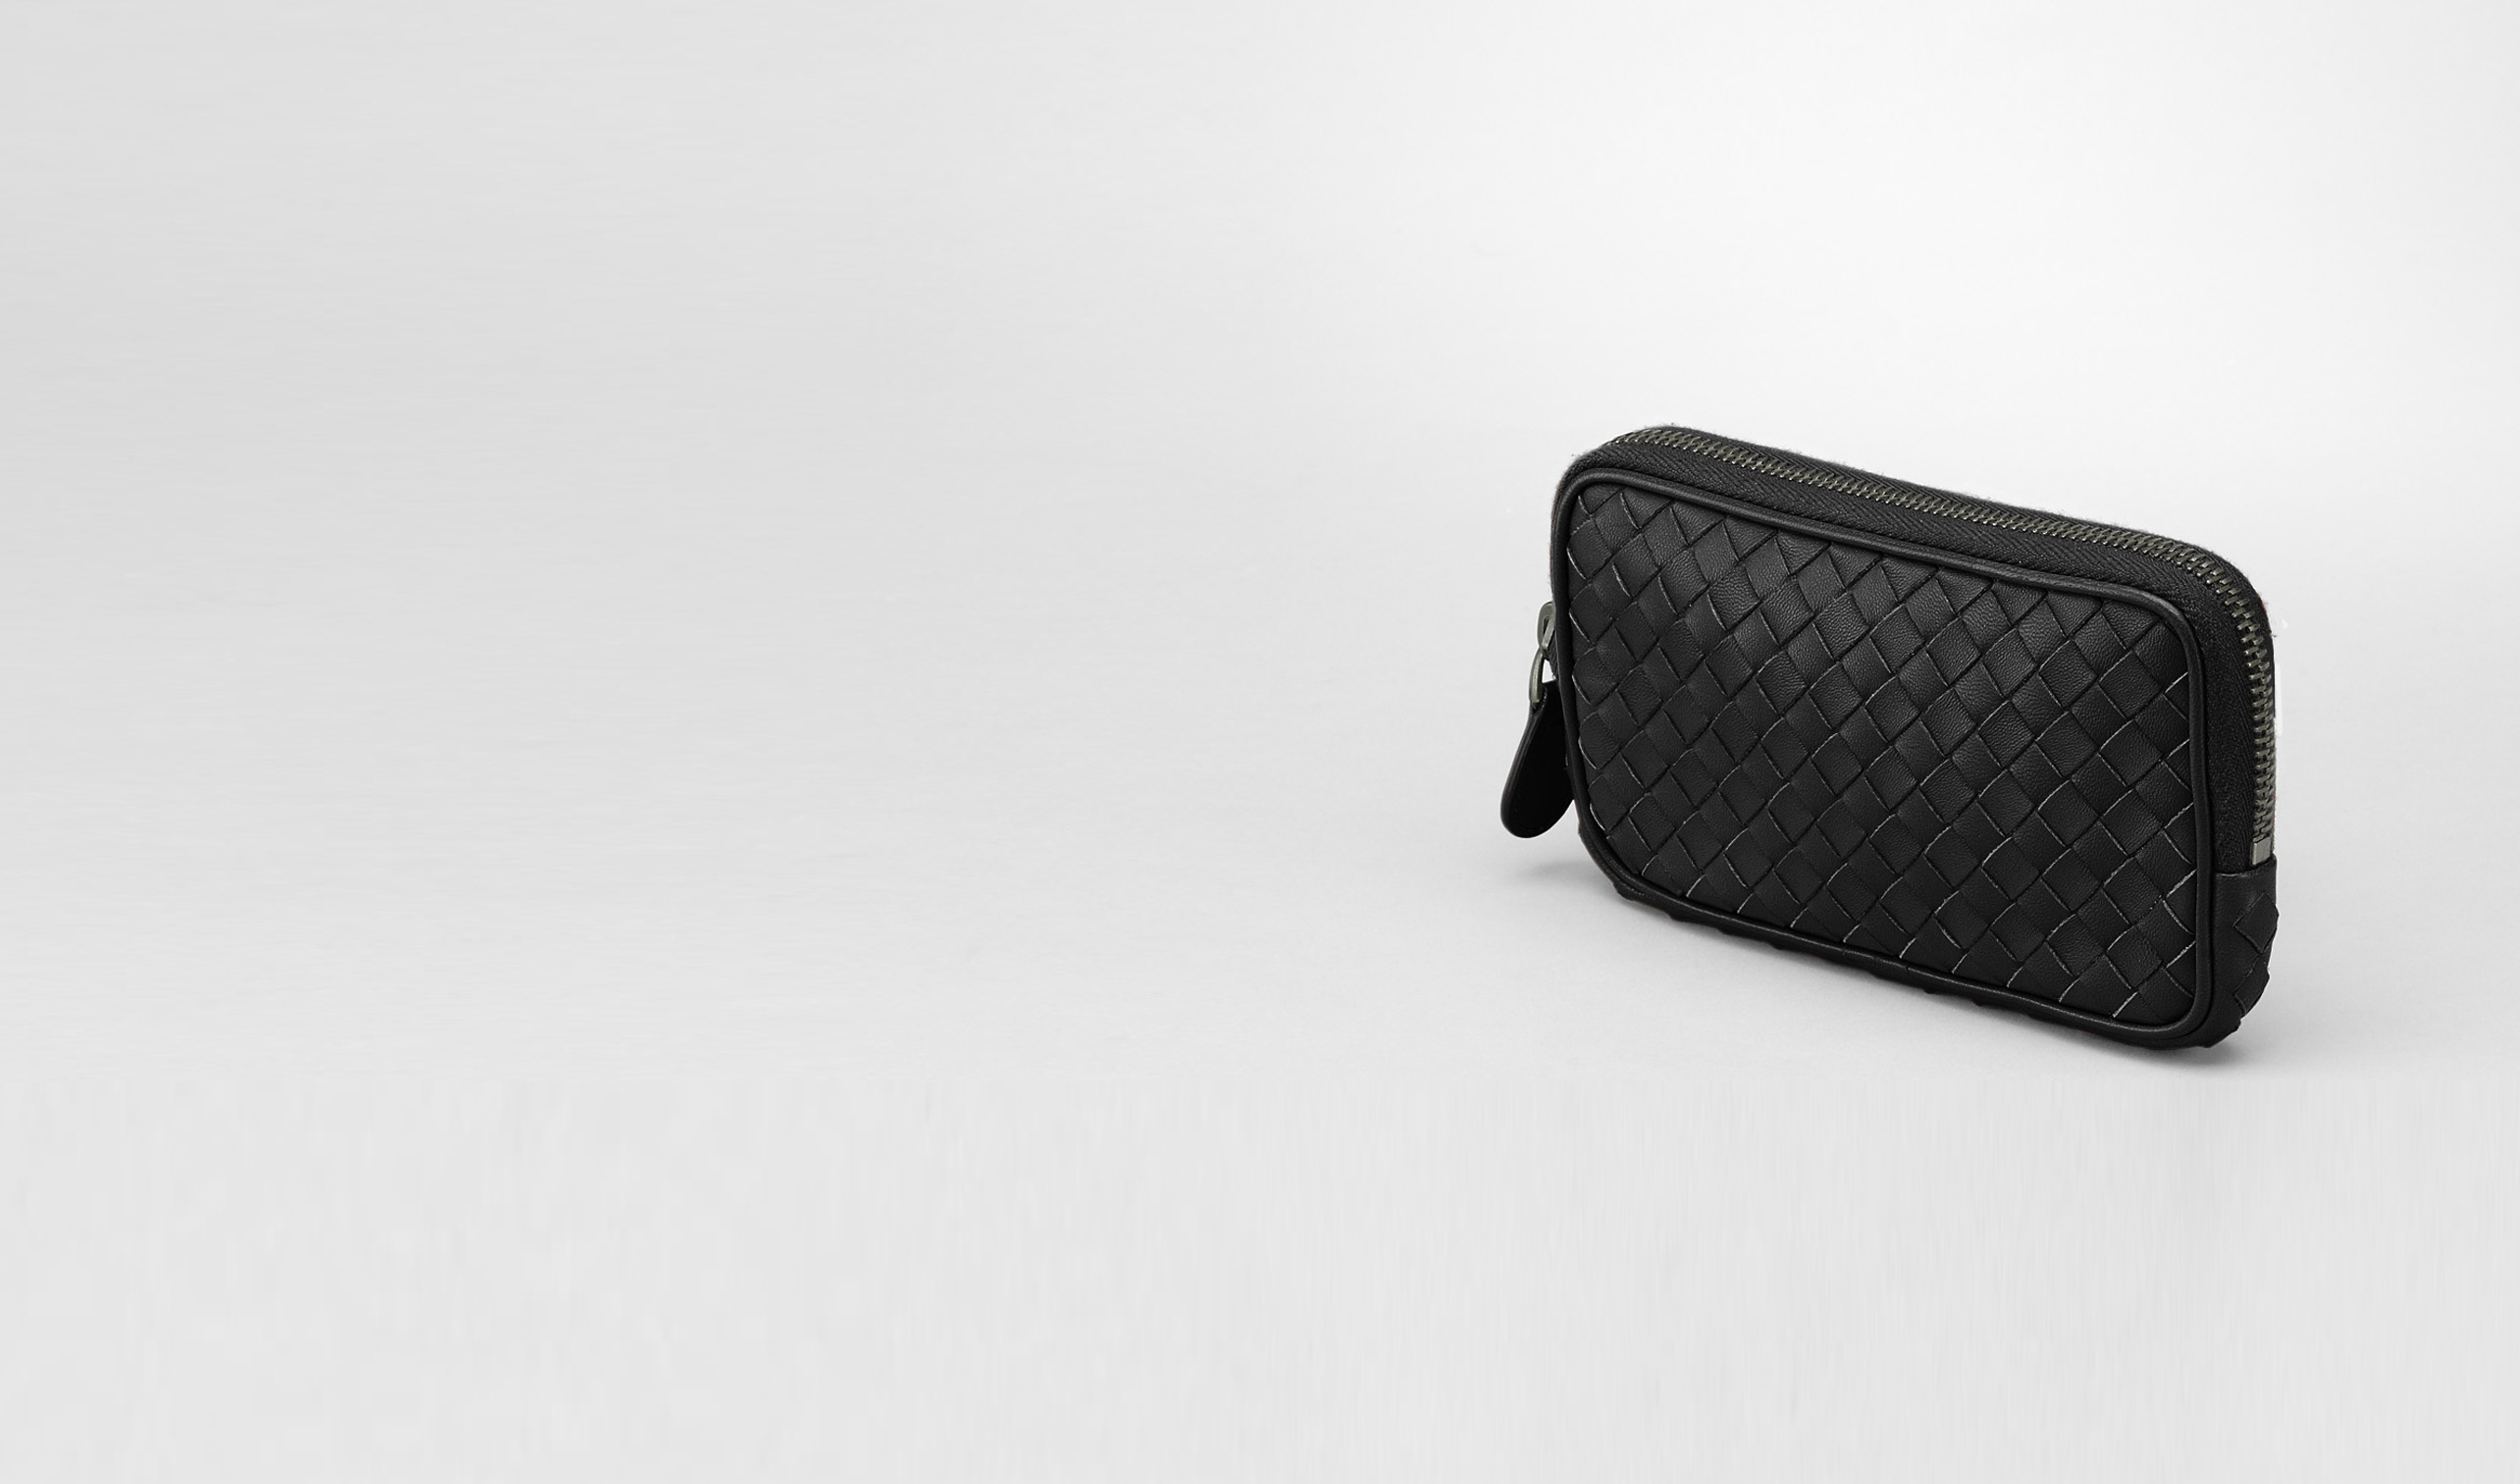 BOTTEGA VENETA Other Leather Accessory D Nero Intrecciato Nappa Hi-tech Case pl